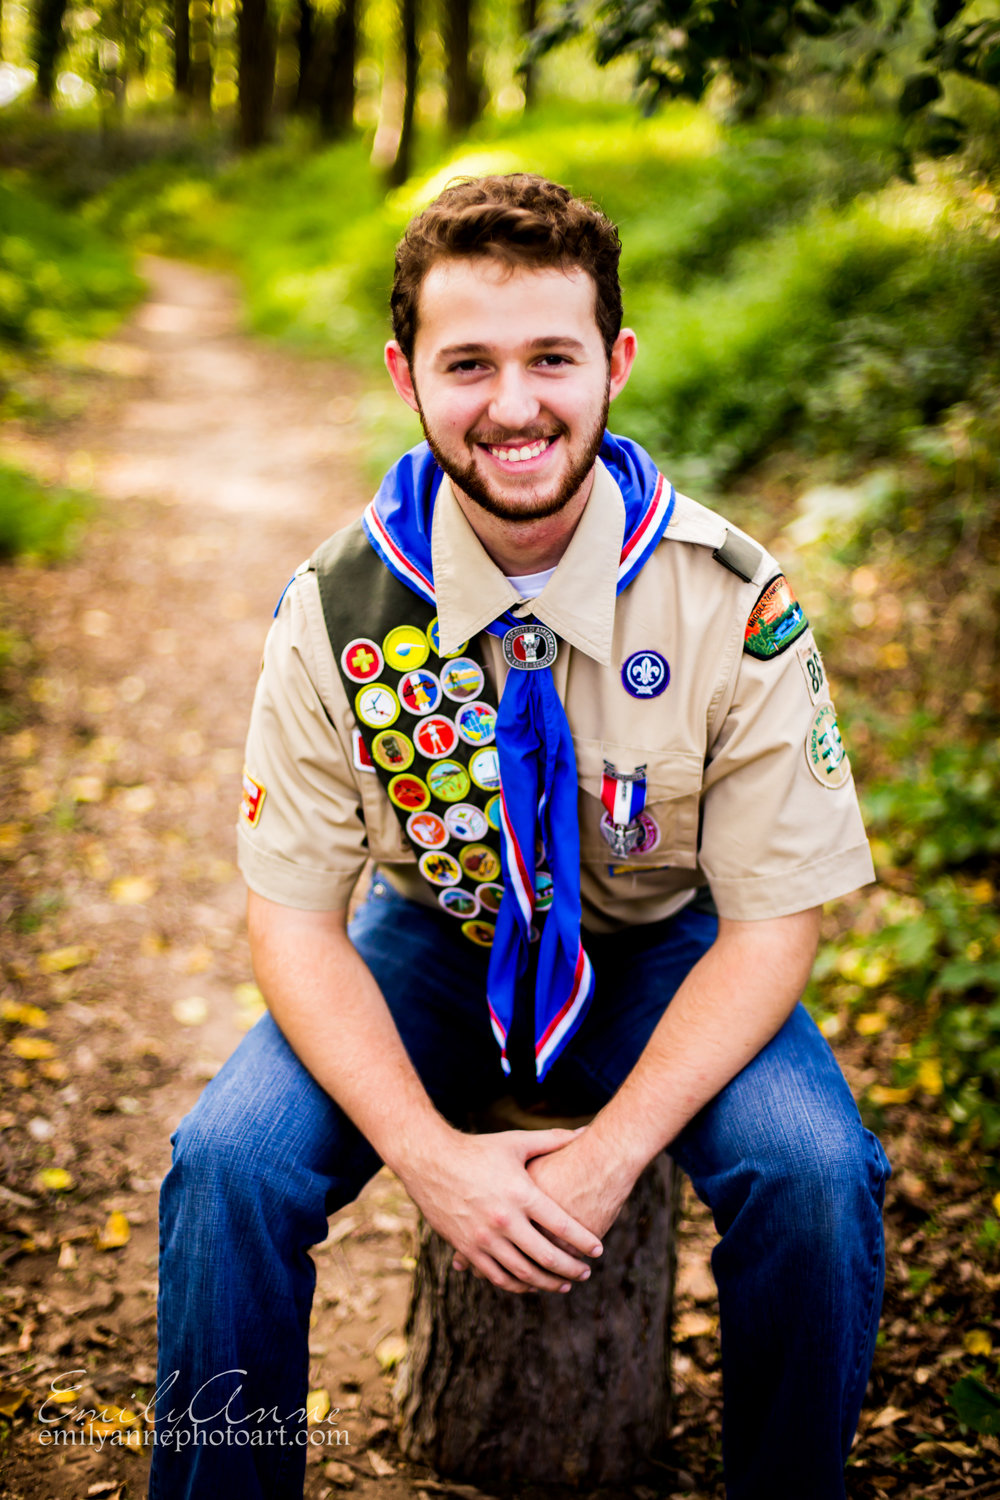 best guy senior portrait photographer nashville tn